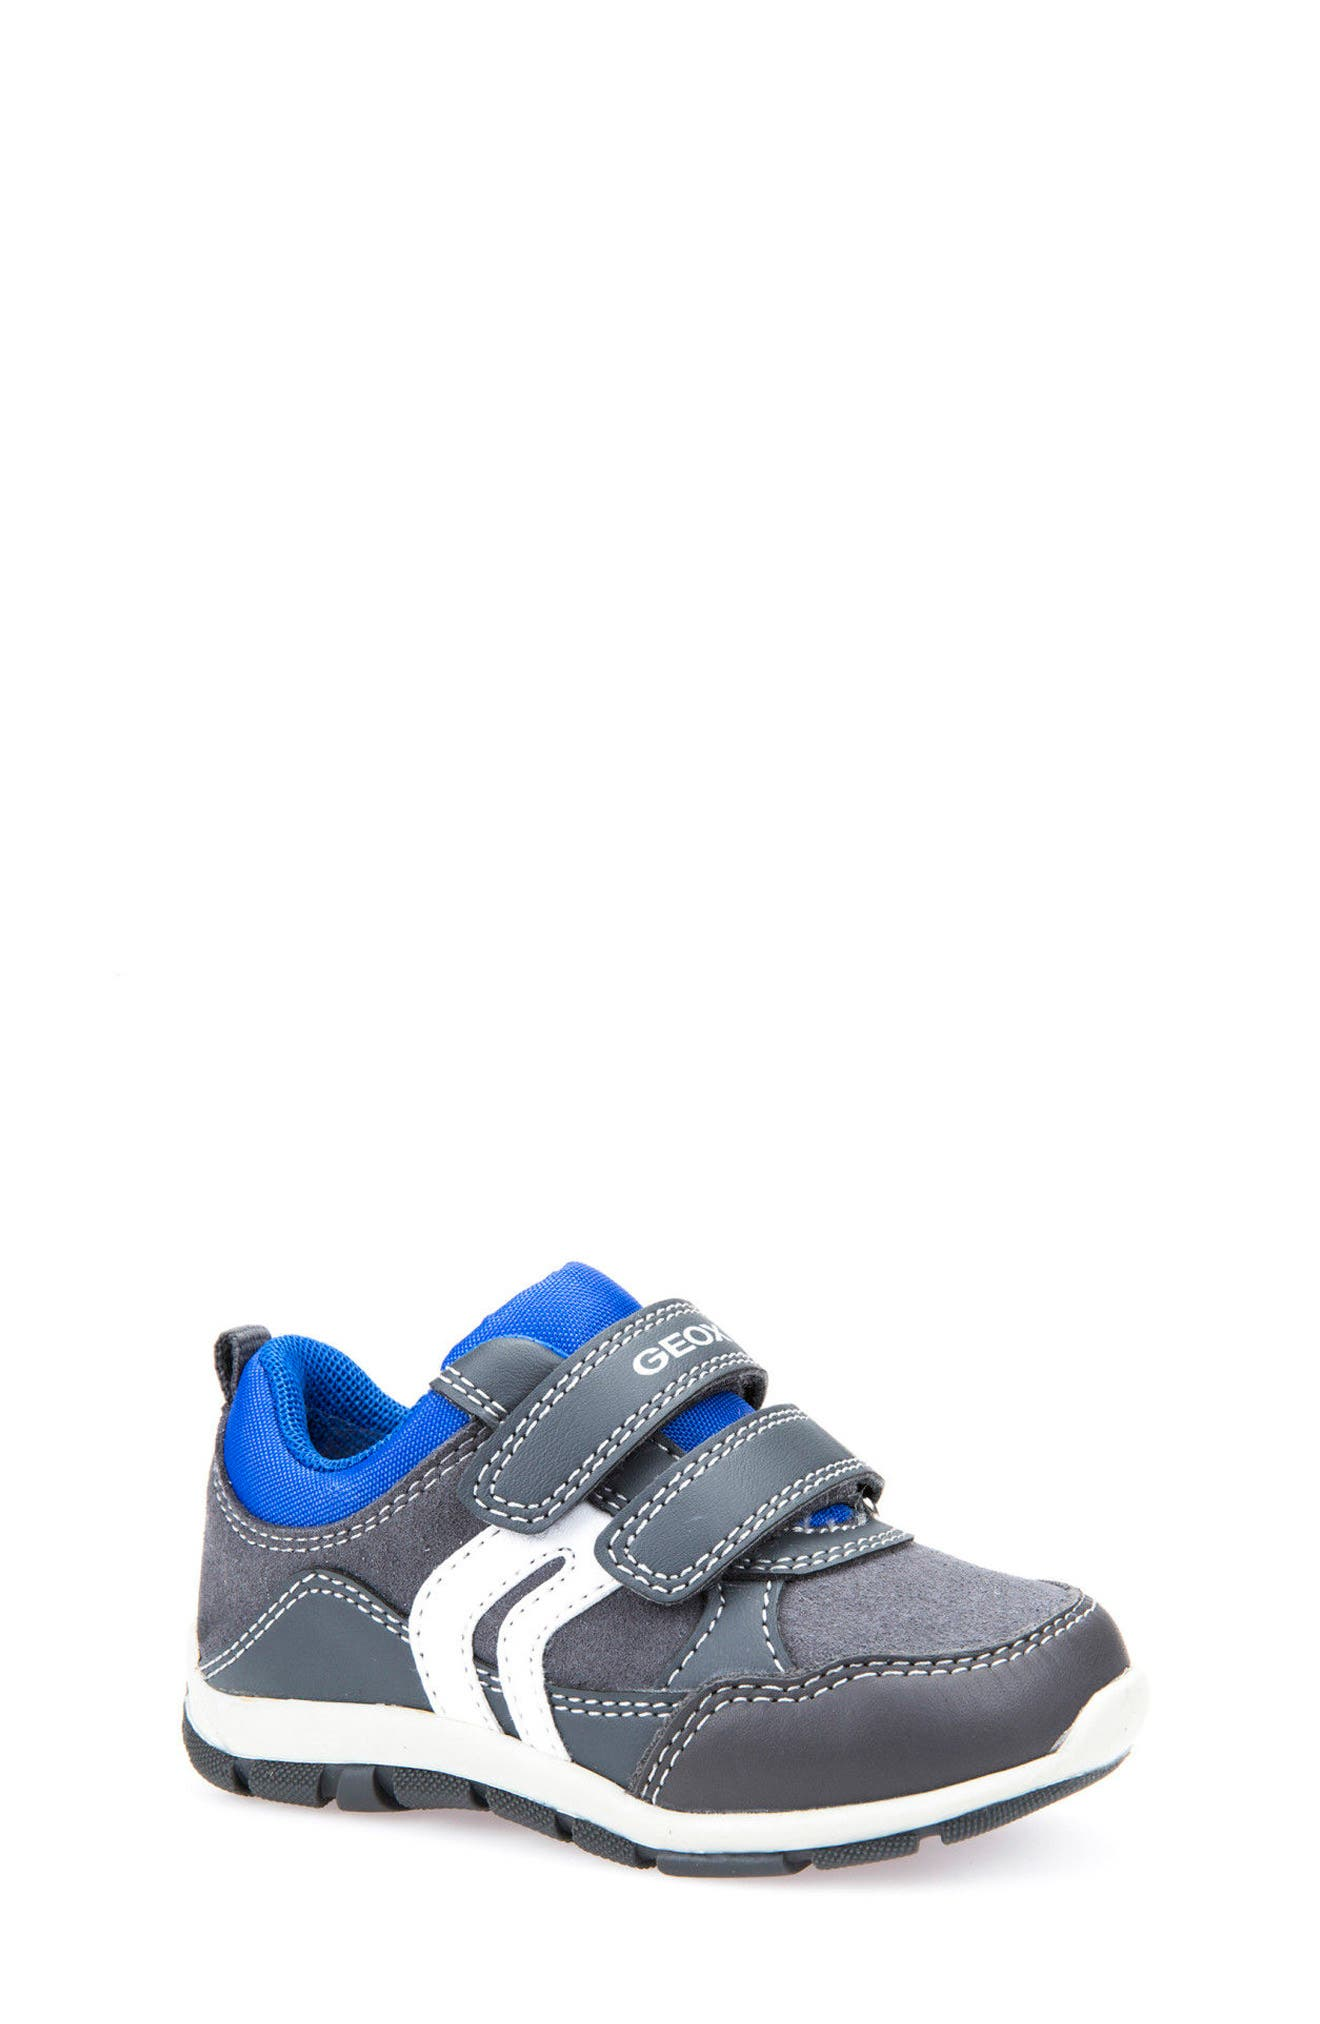 'Shaax 9' Sneaker,                         Main,                         color, 073